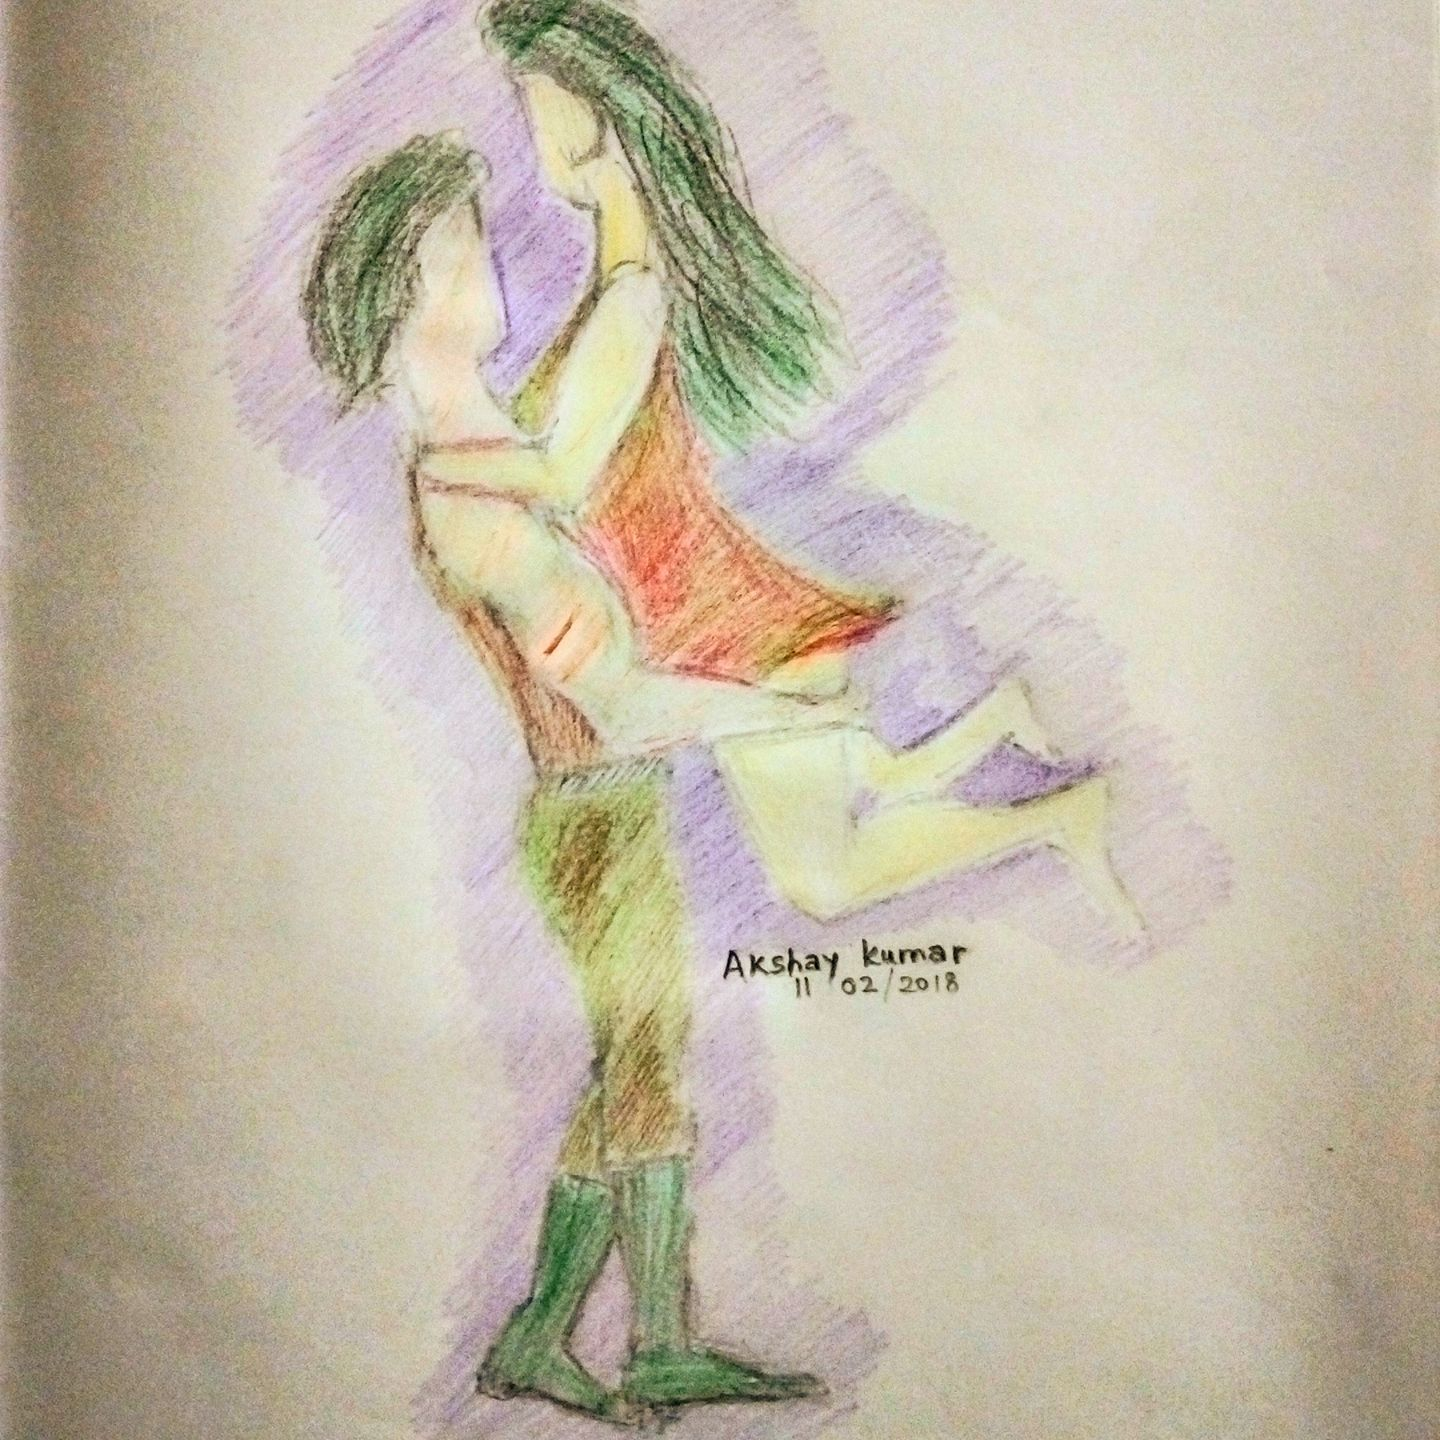 Akshay kumar color pencil drawing of romantic love couple by artist